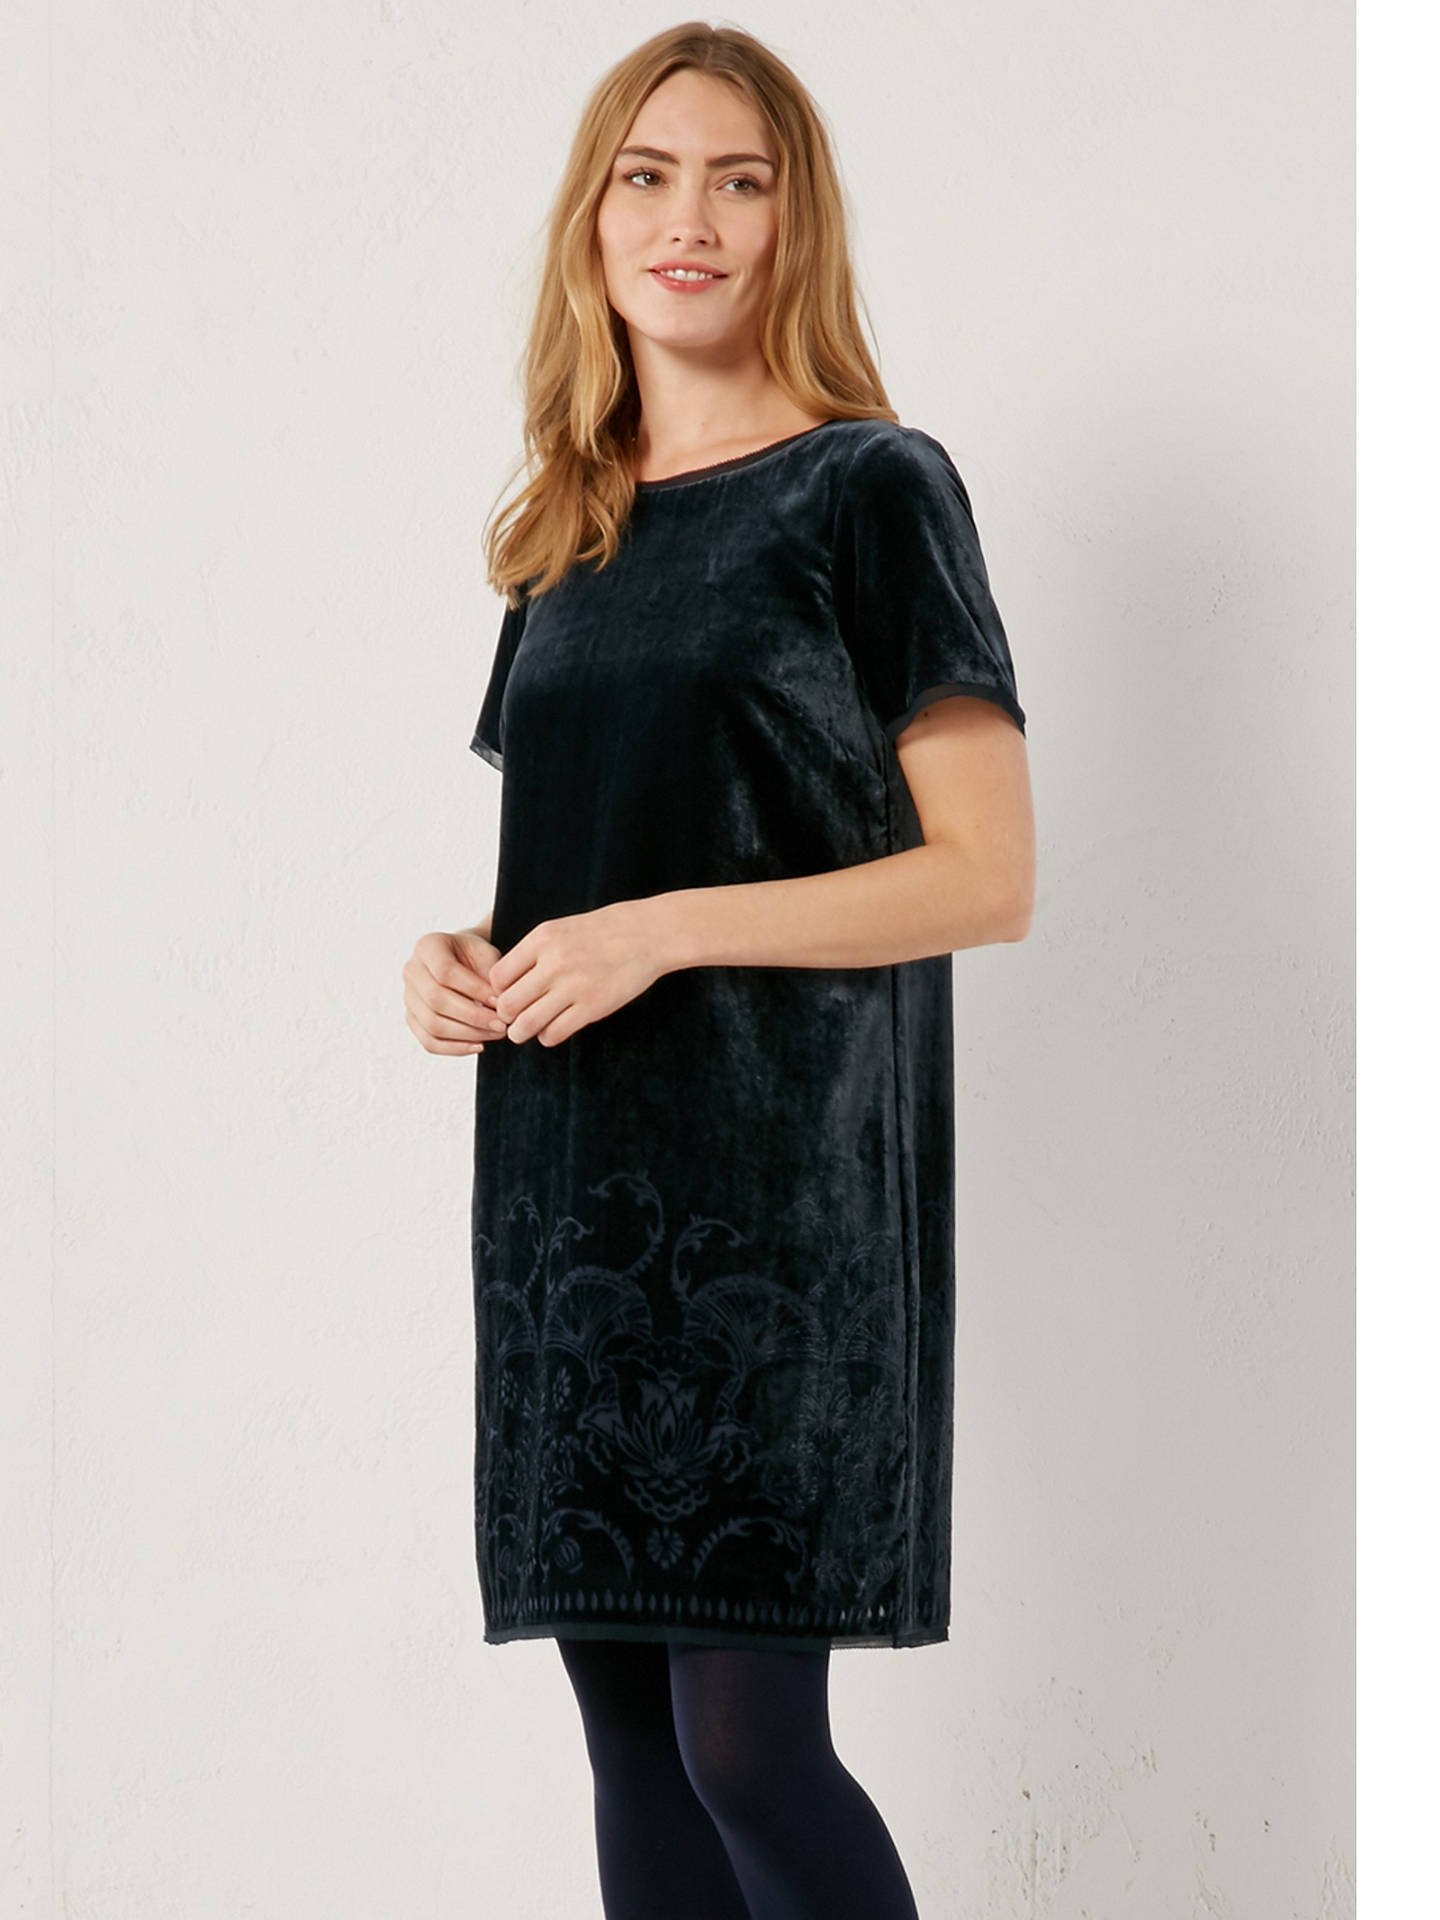 9d3a6fbf7d76 ... Buy White Stuff Harper Velvet Dress, Eccentric Blue, 6 Online at  johnlewis.com ...